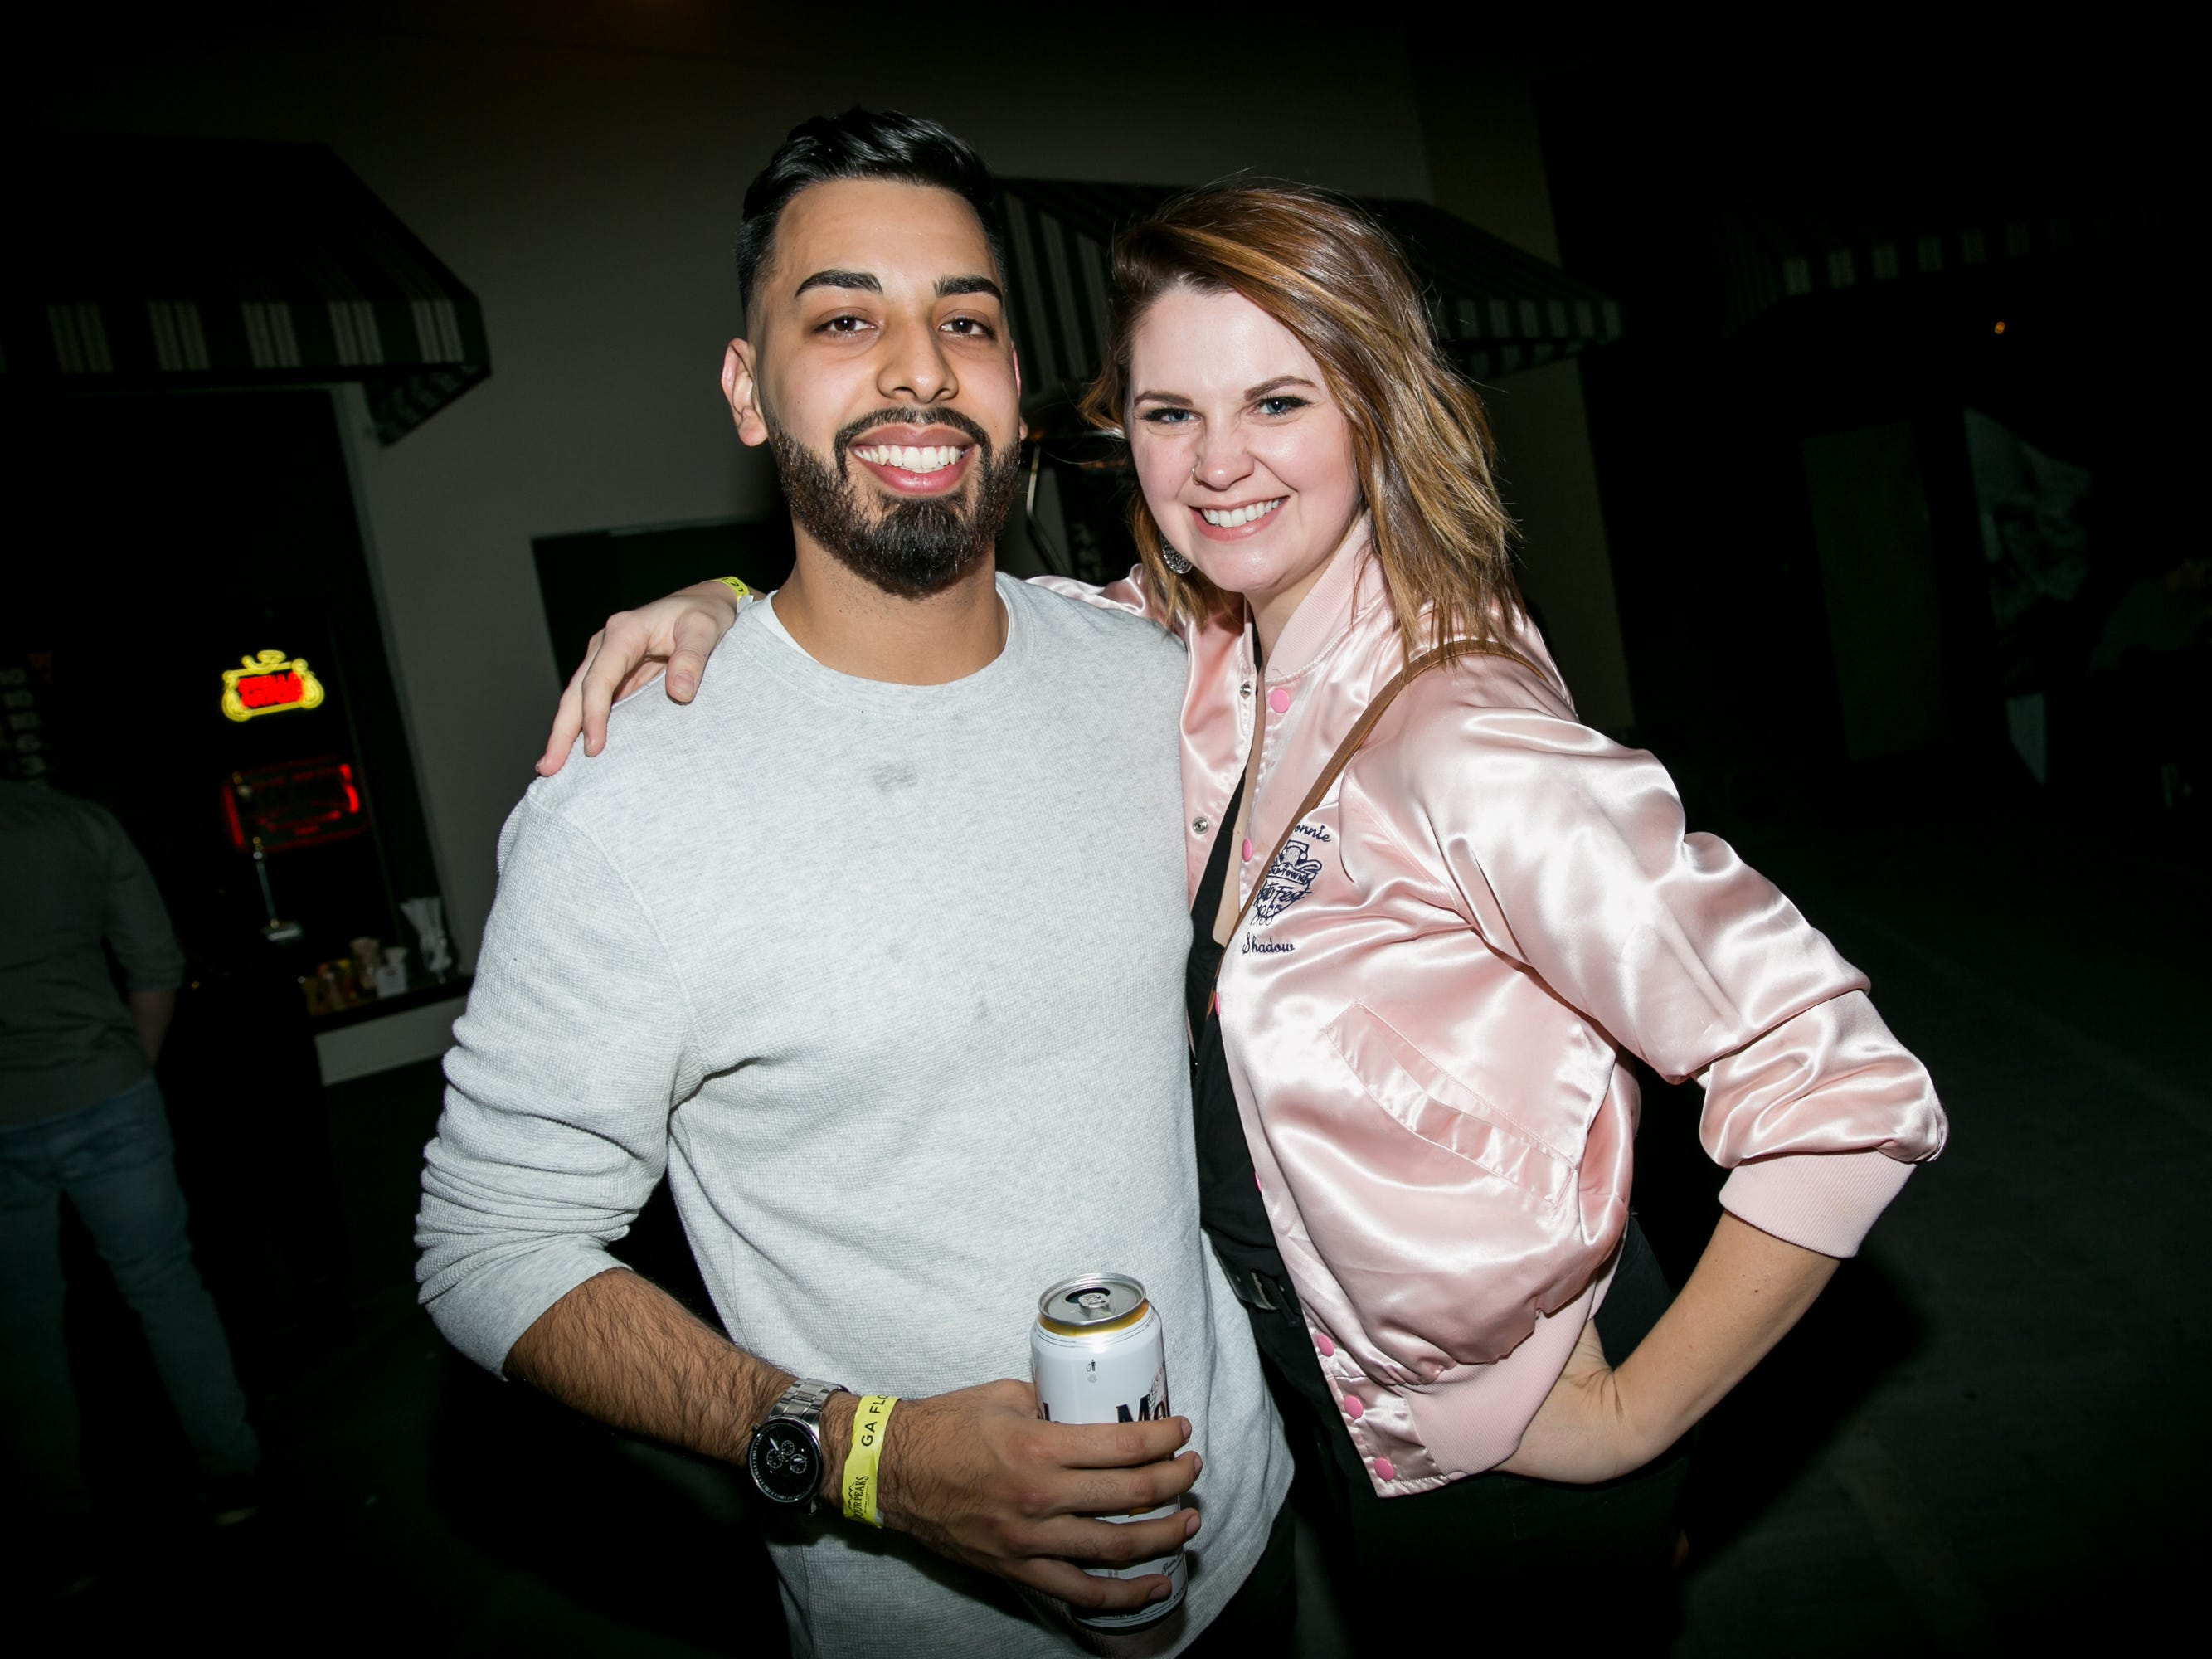 It was their world, just these two during Drake Night: Fake Real Love at the Van Buren on Feb. 9, 2019.